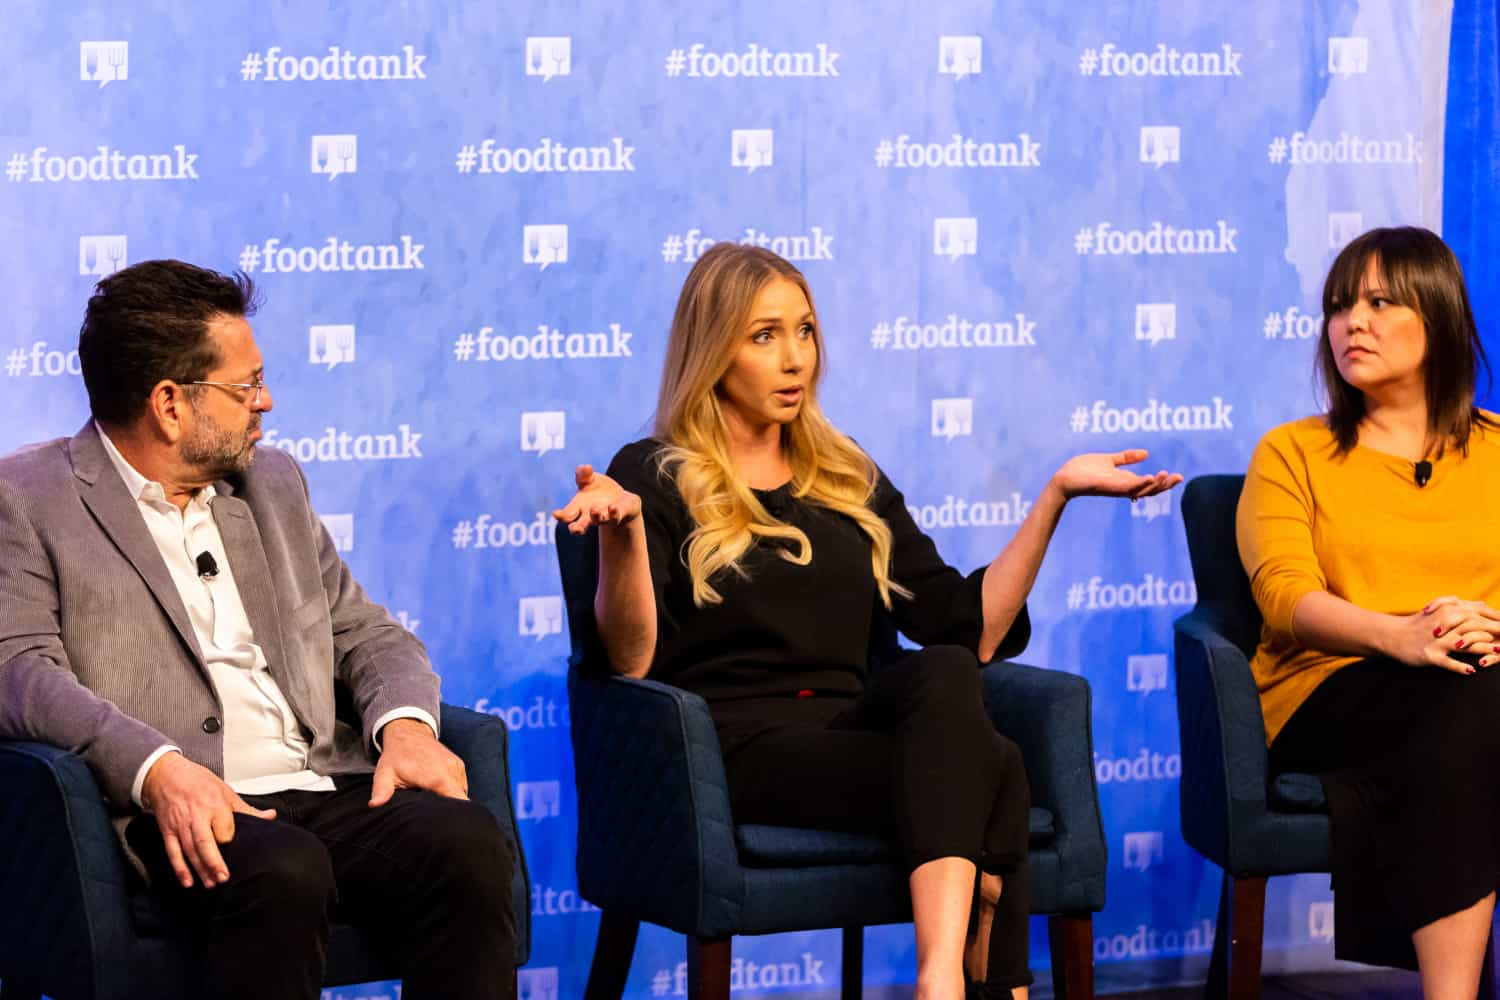 At the San Diego Food Tank Summit, a panel of food journalists discuss the transformative potential of storytelling for our food system.